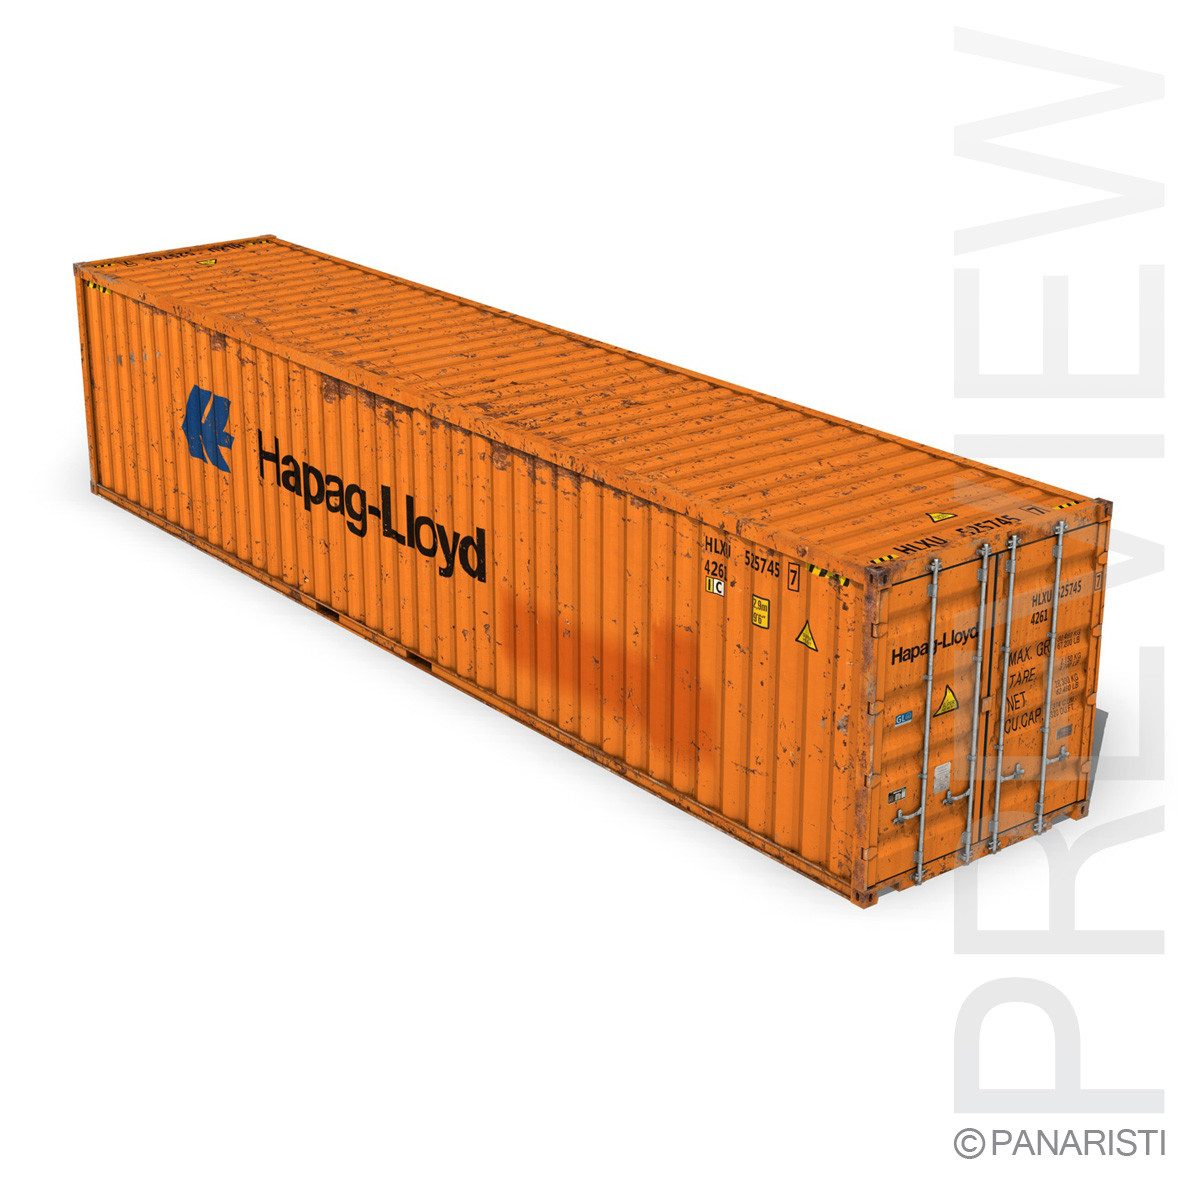 40ft Shipping Container - Hapag Lloyd